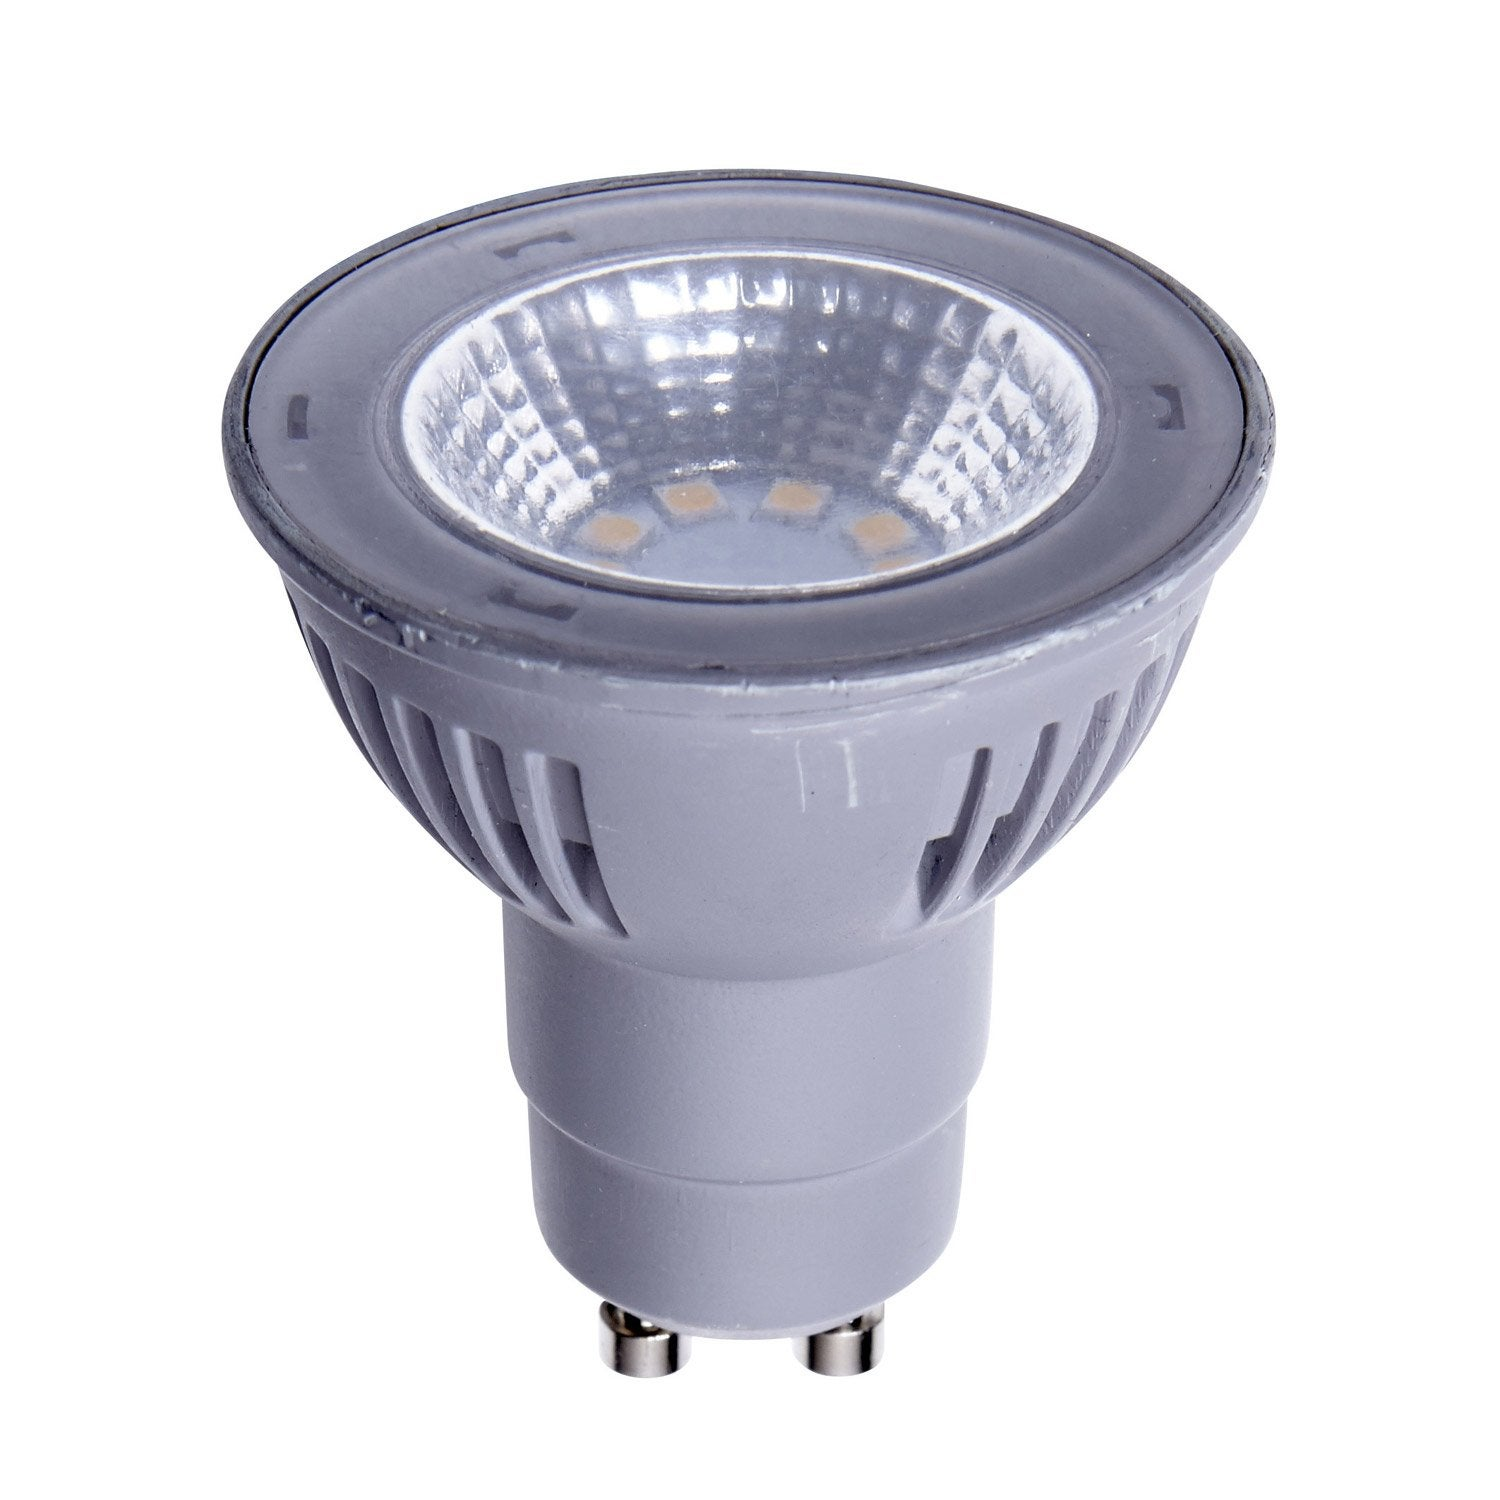 Ampoule r flecteur led 5 5w 450lm quiv 50w gu10 4000k for Tiras led leroy merlin